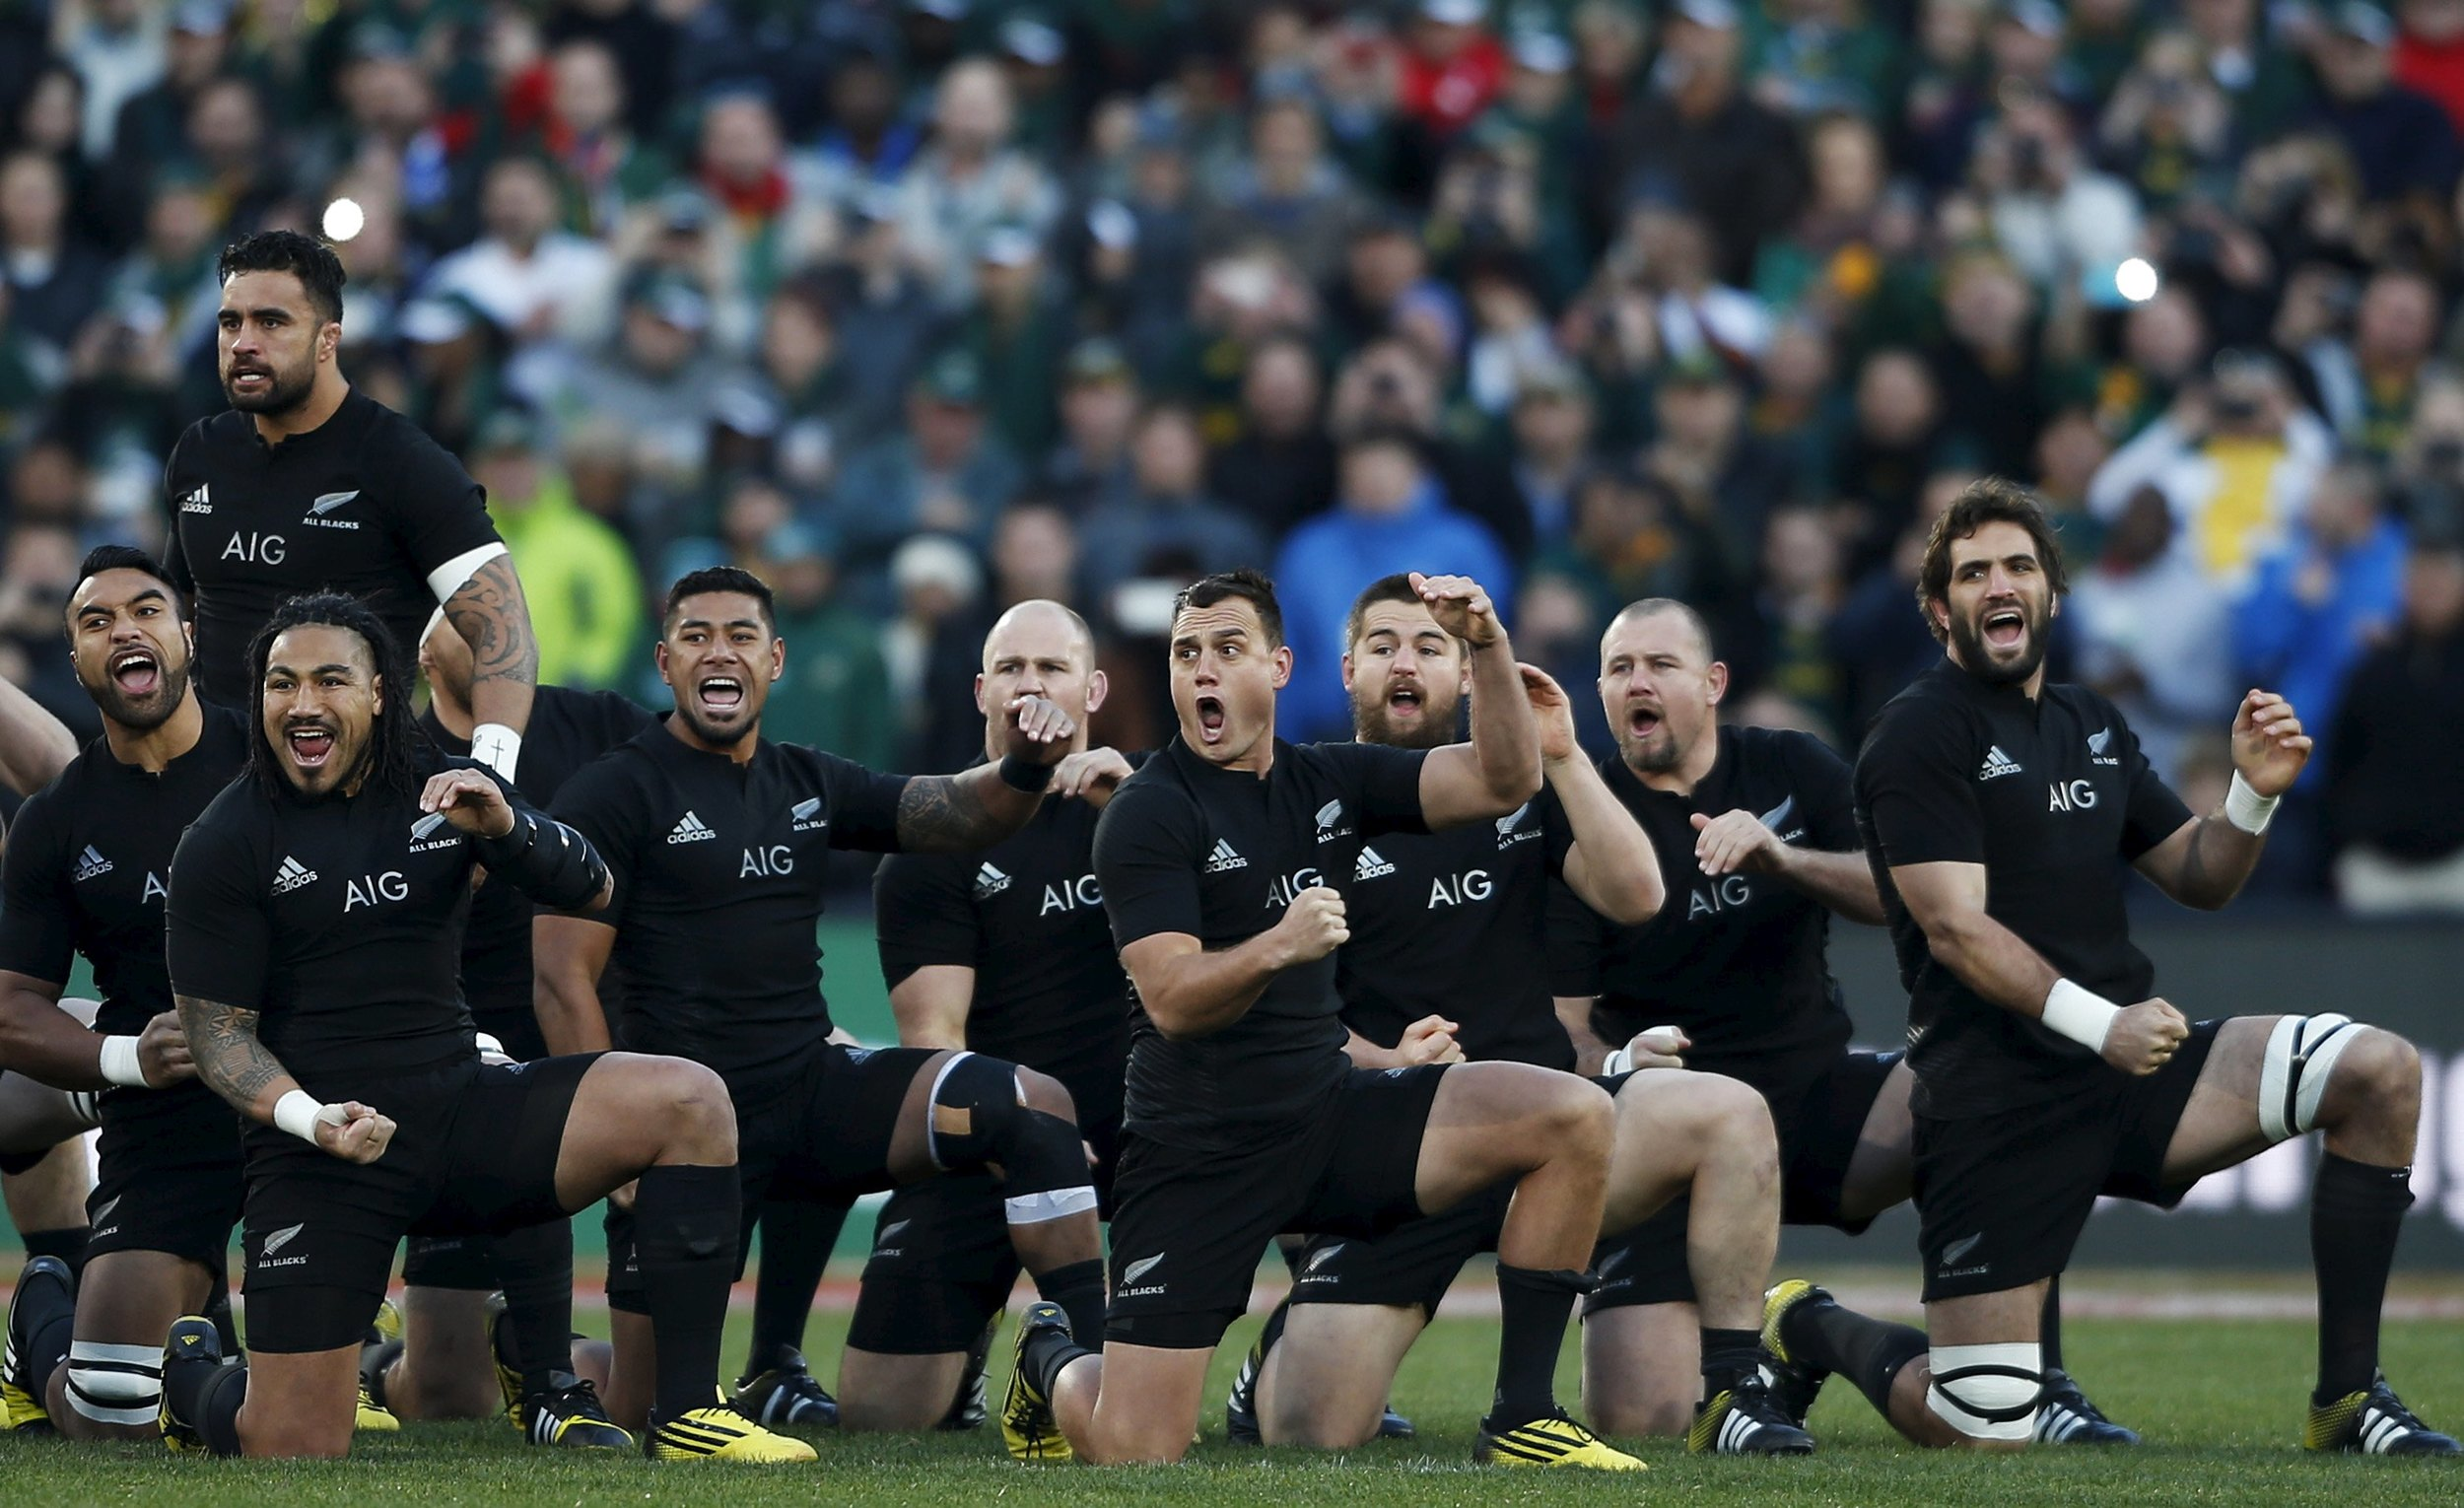 Few teams in world sport can match the dominance of New Zealand's All Blacks. Their brand is not just associated with fantastic rugby, but with superiority on the world stage. Positive brand equity is vital for the success of this superpower. Image supplied by Action Images.